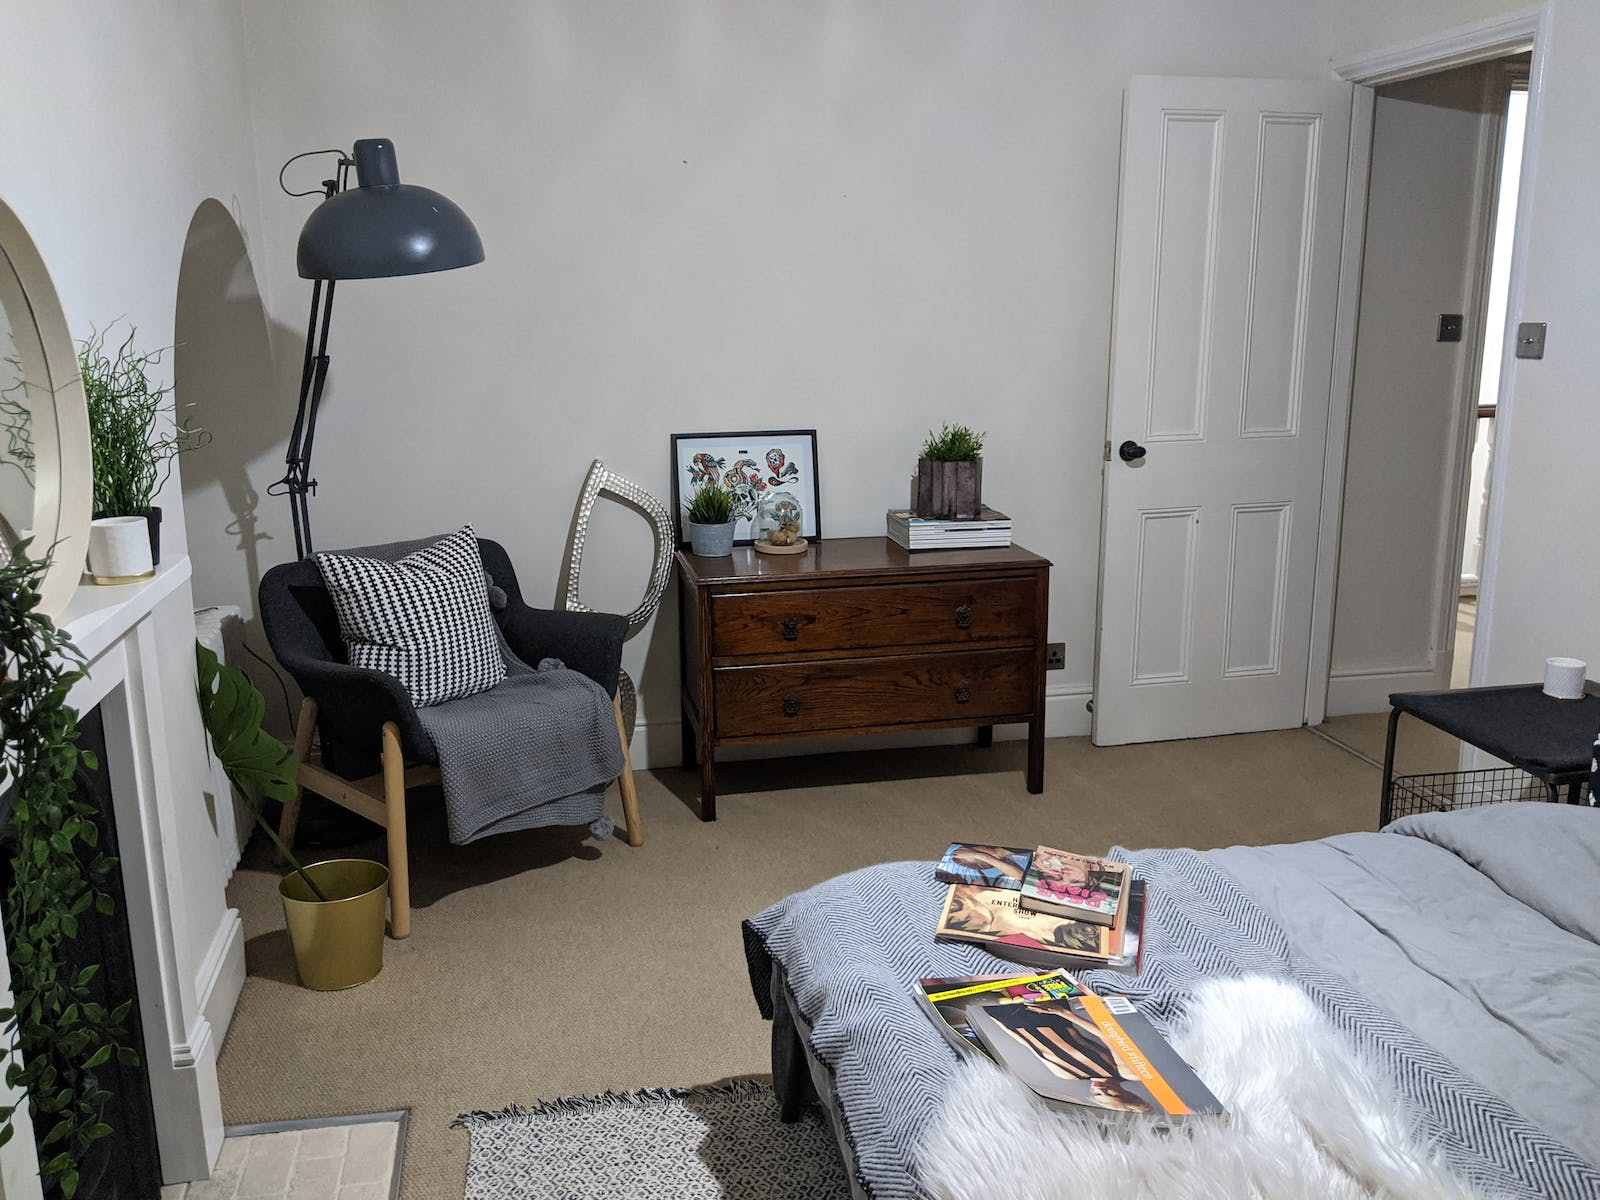 Bedroom in with white walls decorated with cabinet and a grey one-seater